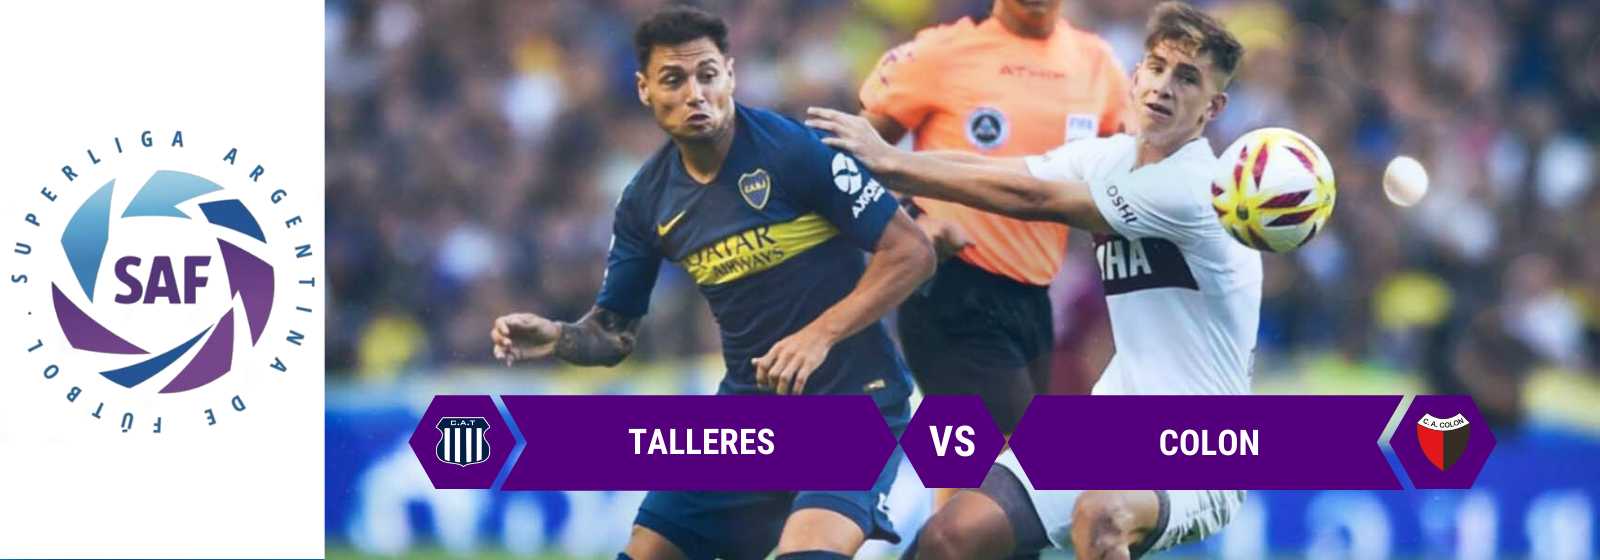 Asianconnect: Talleres vs Colon Odds for March 08, 2020